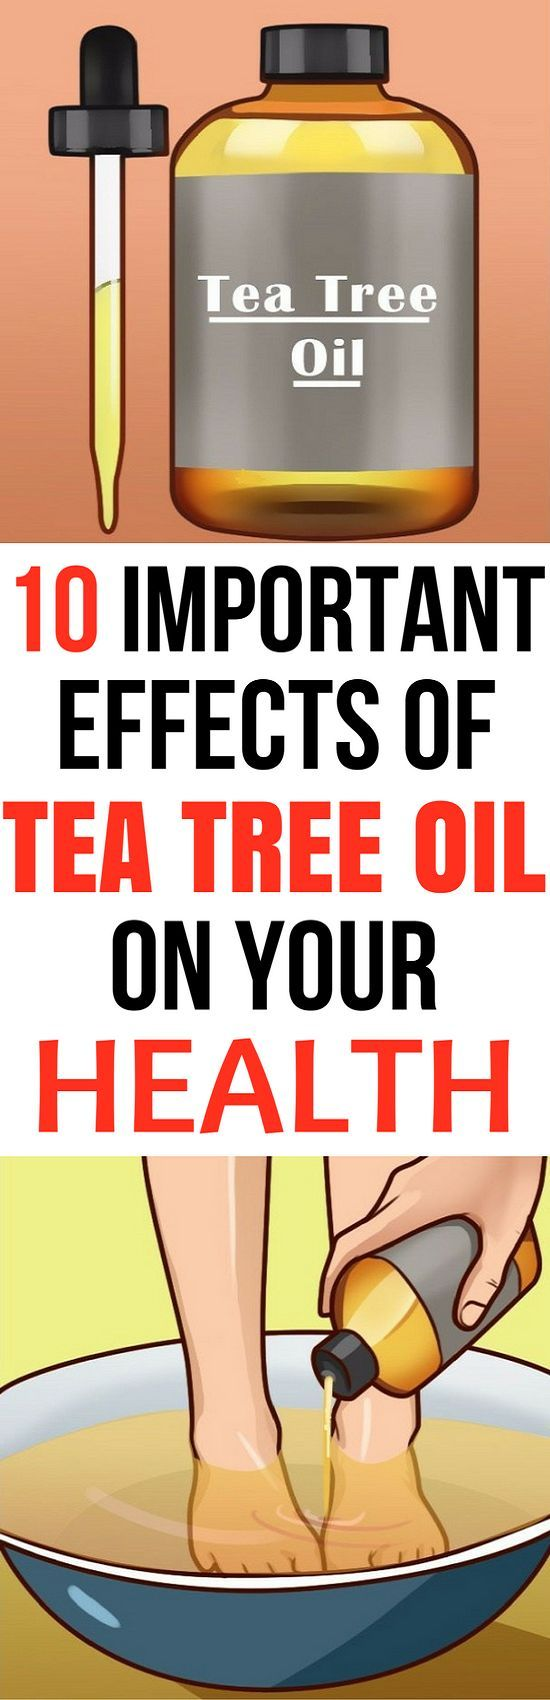 10 important effects of tea tree oil on your health